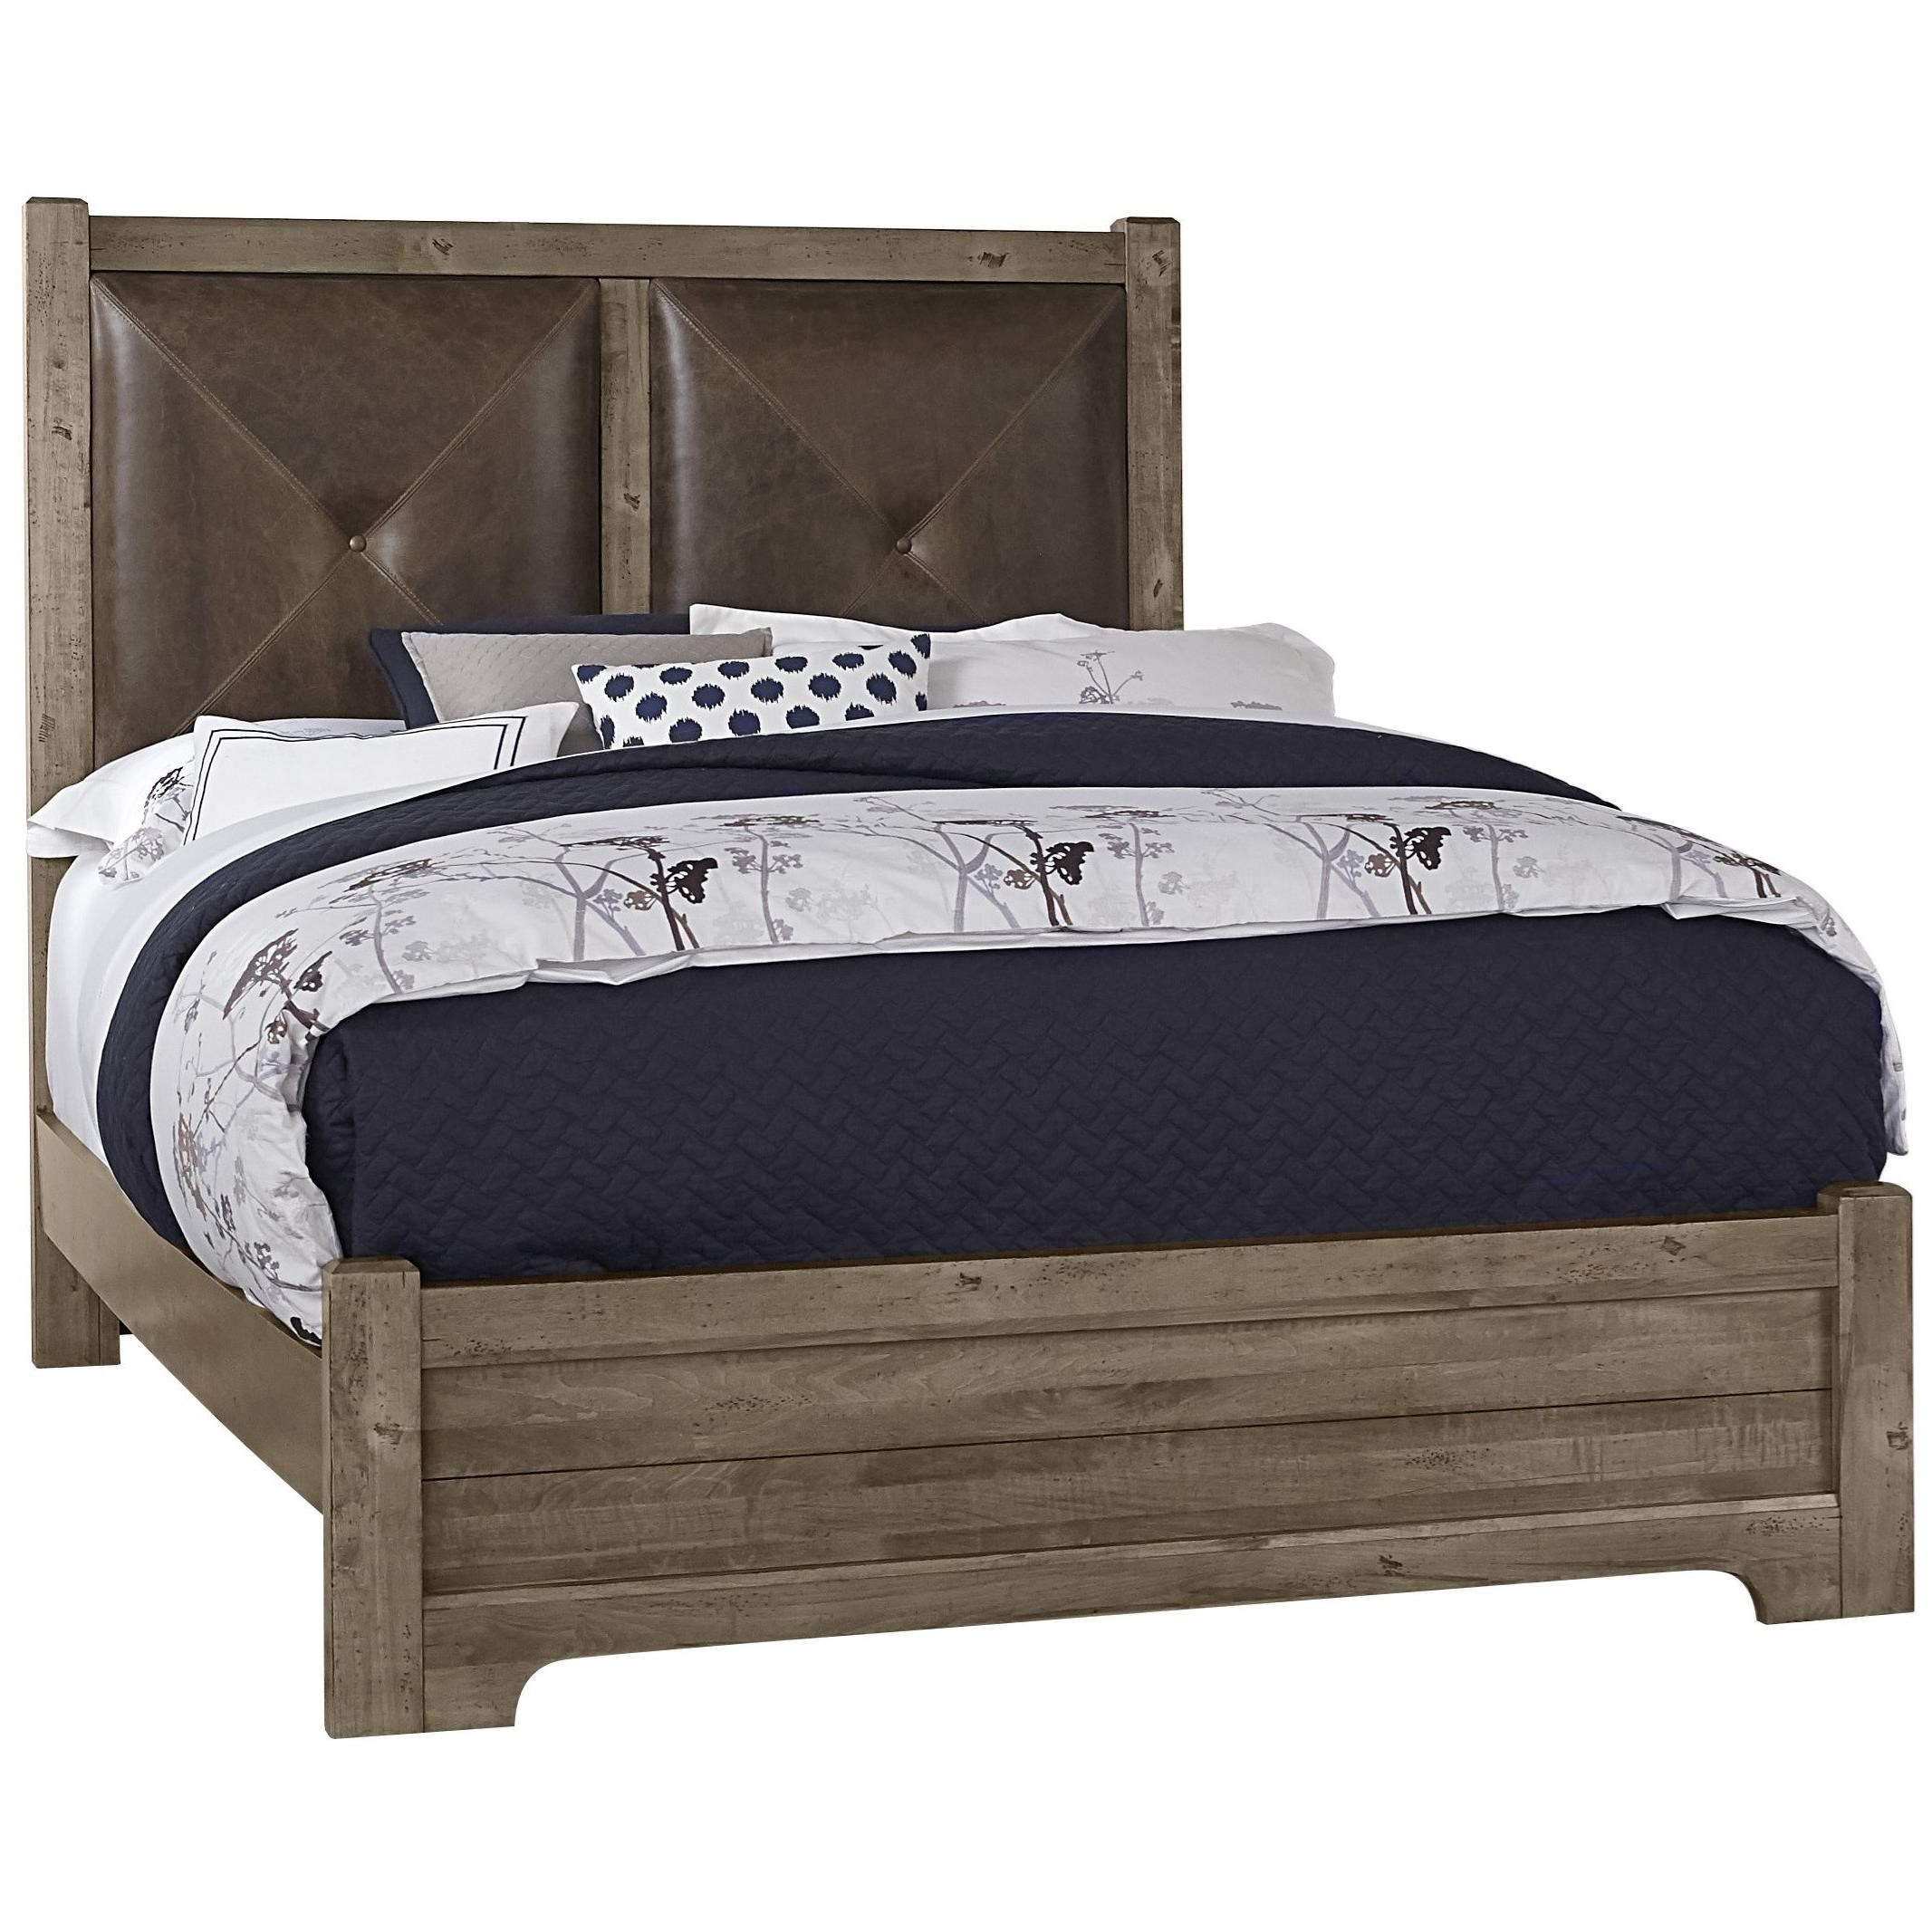 King Leather Headboard Bed